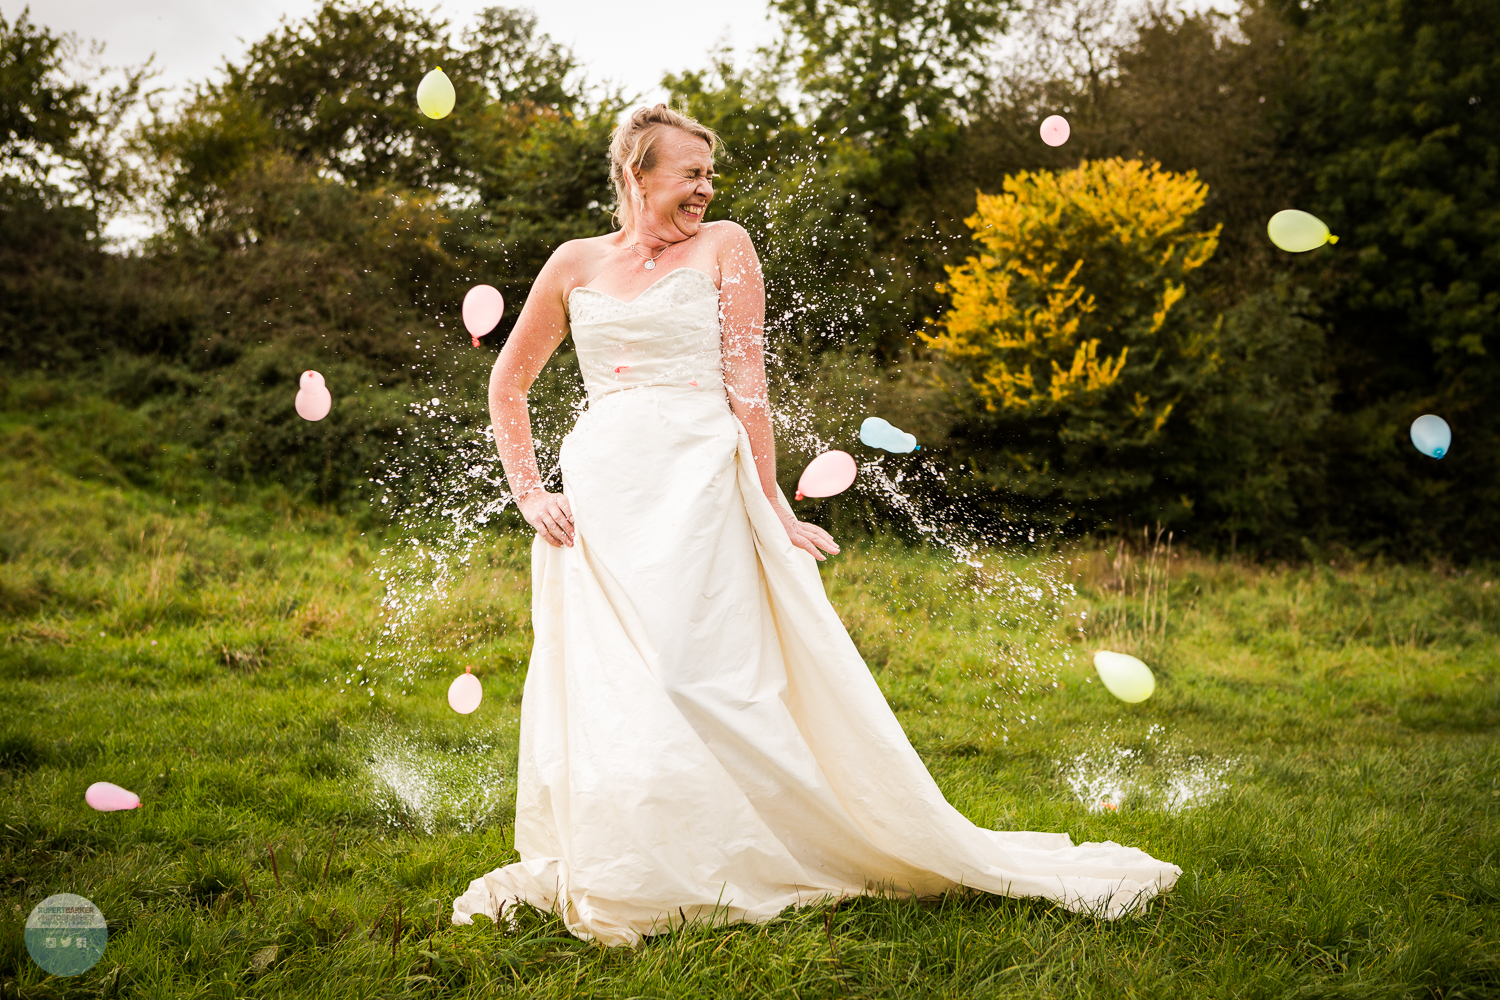 trash the dress river avon malmesbury wedding dress water bombs laughter